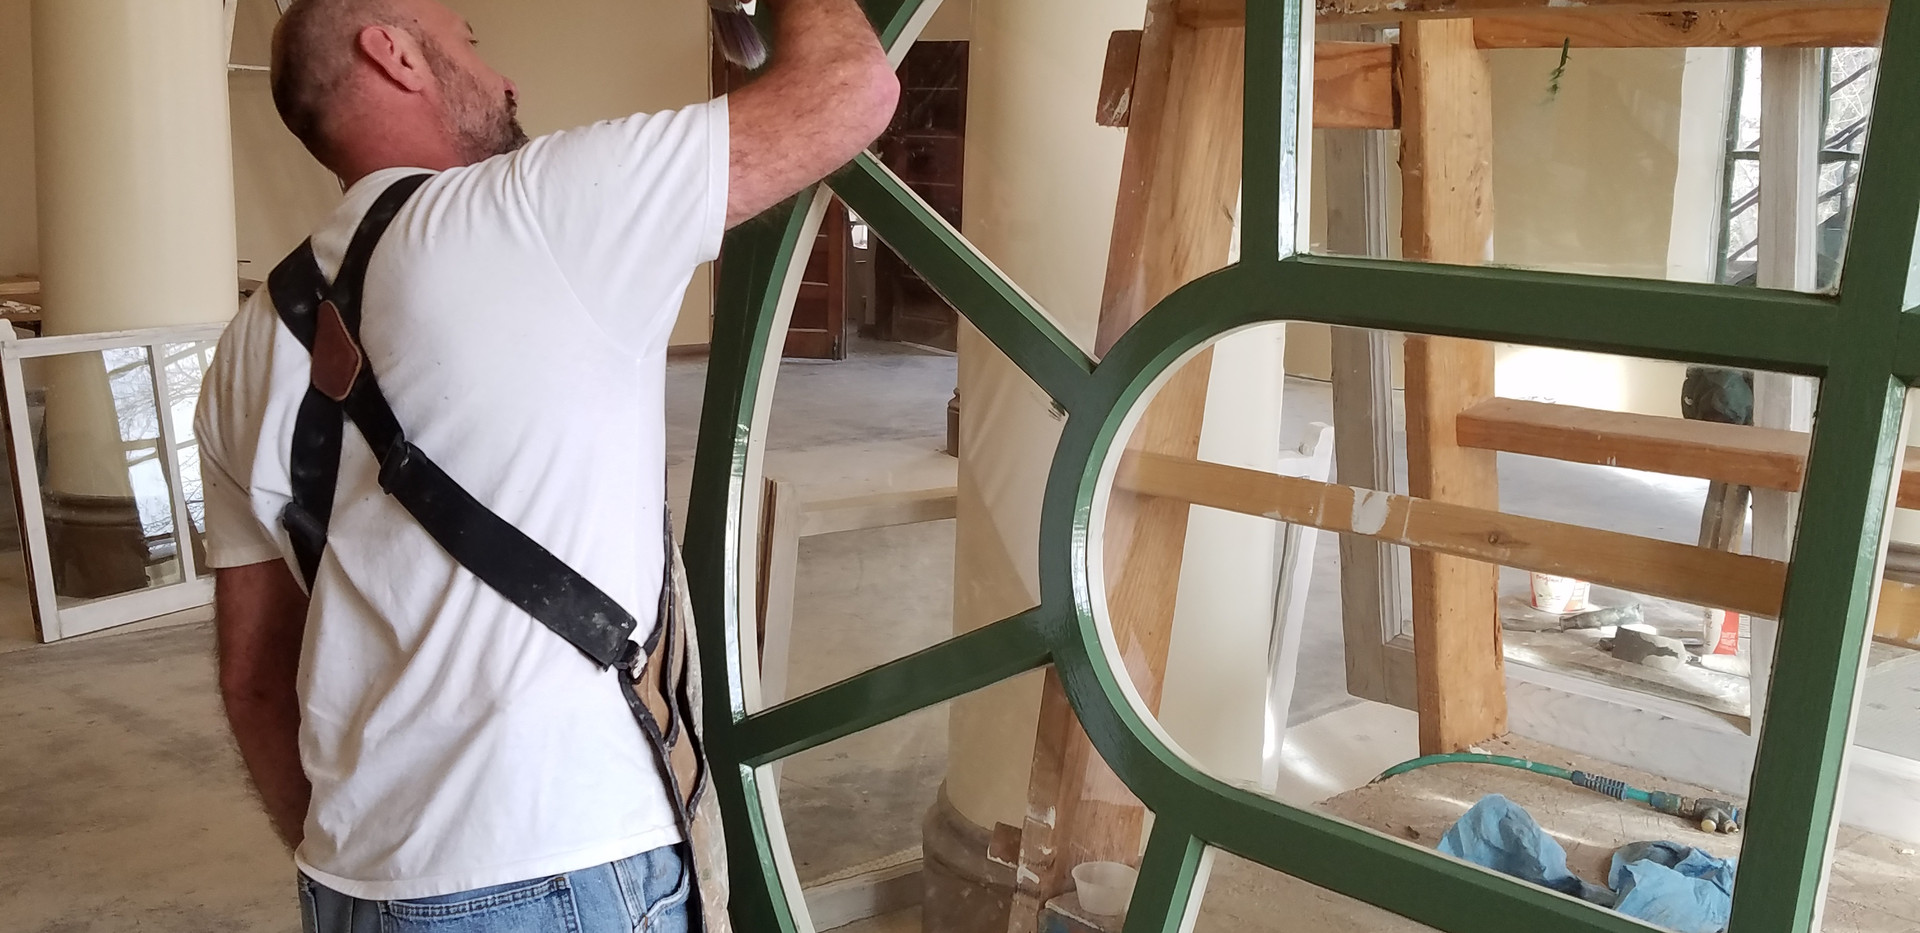 painting the arches.jpg